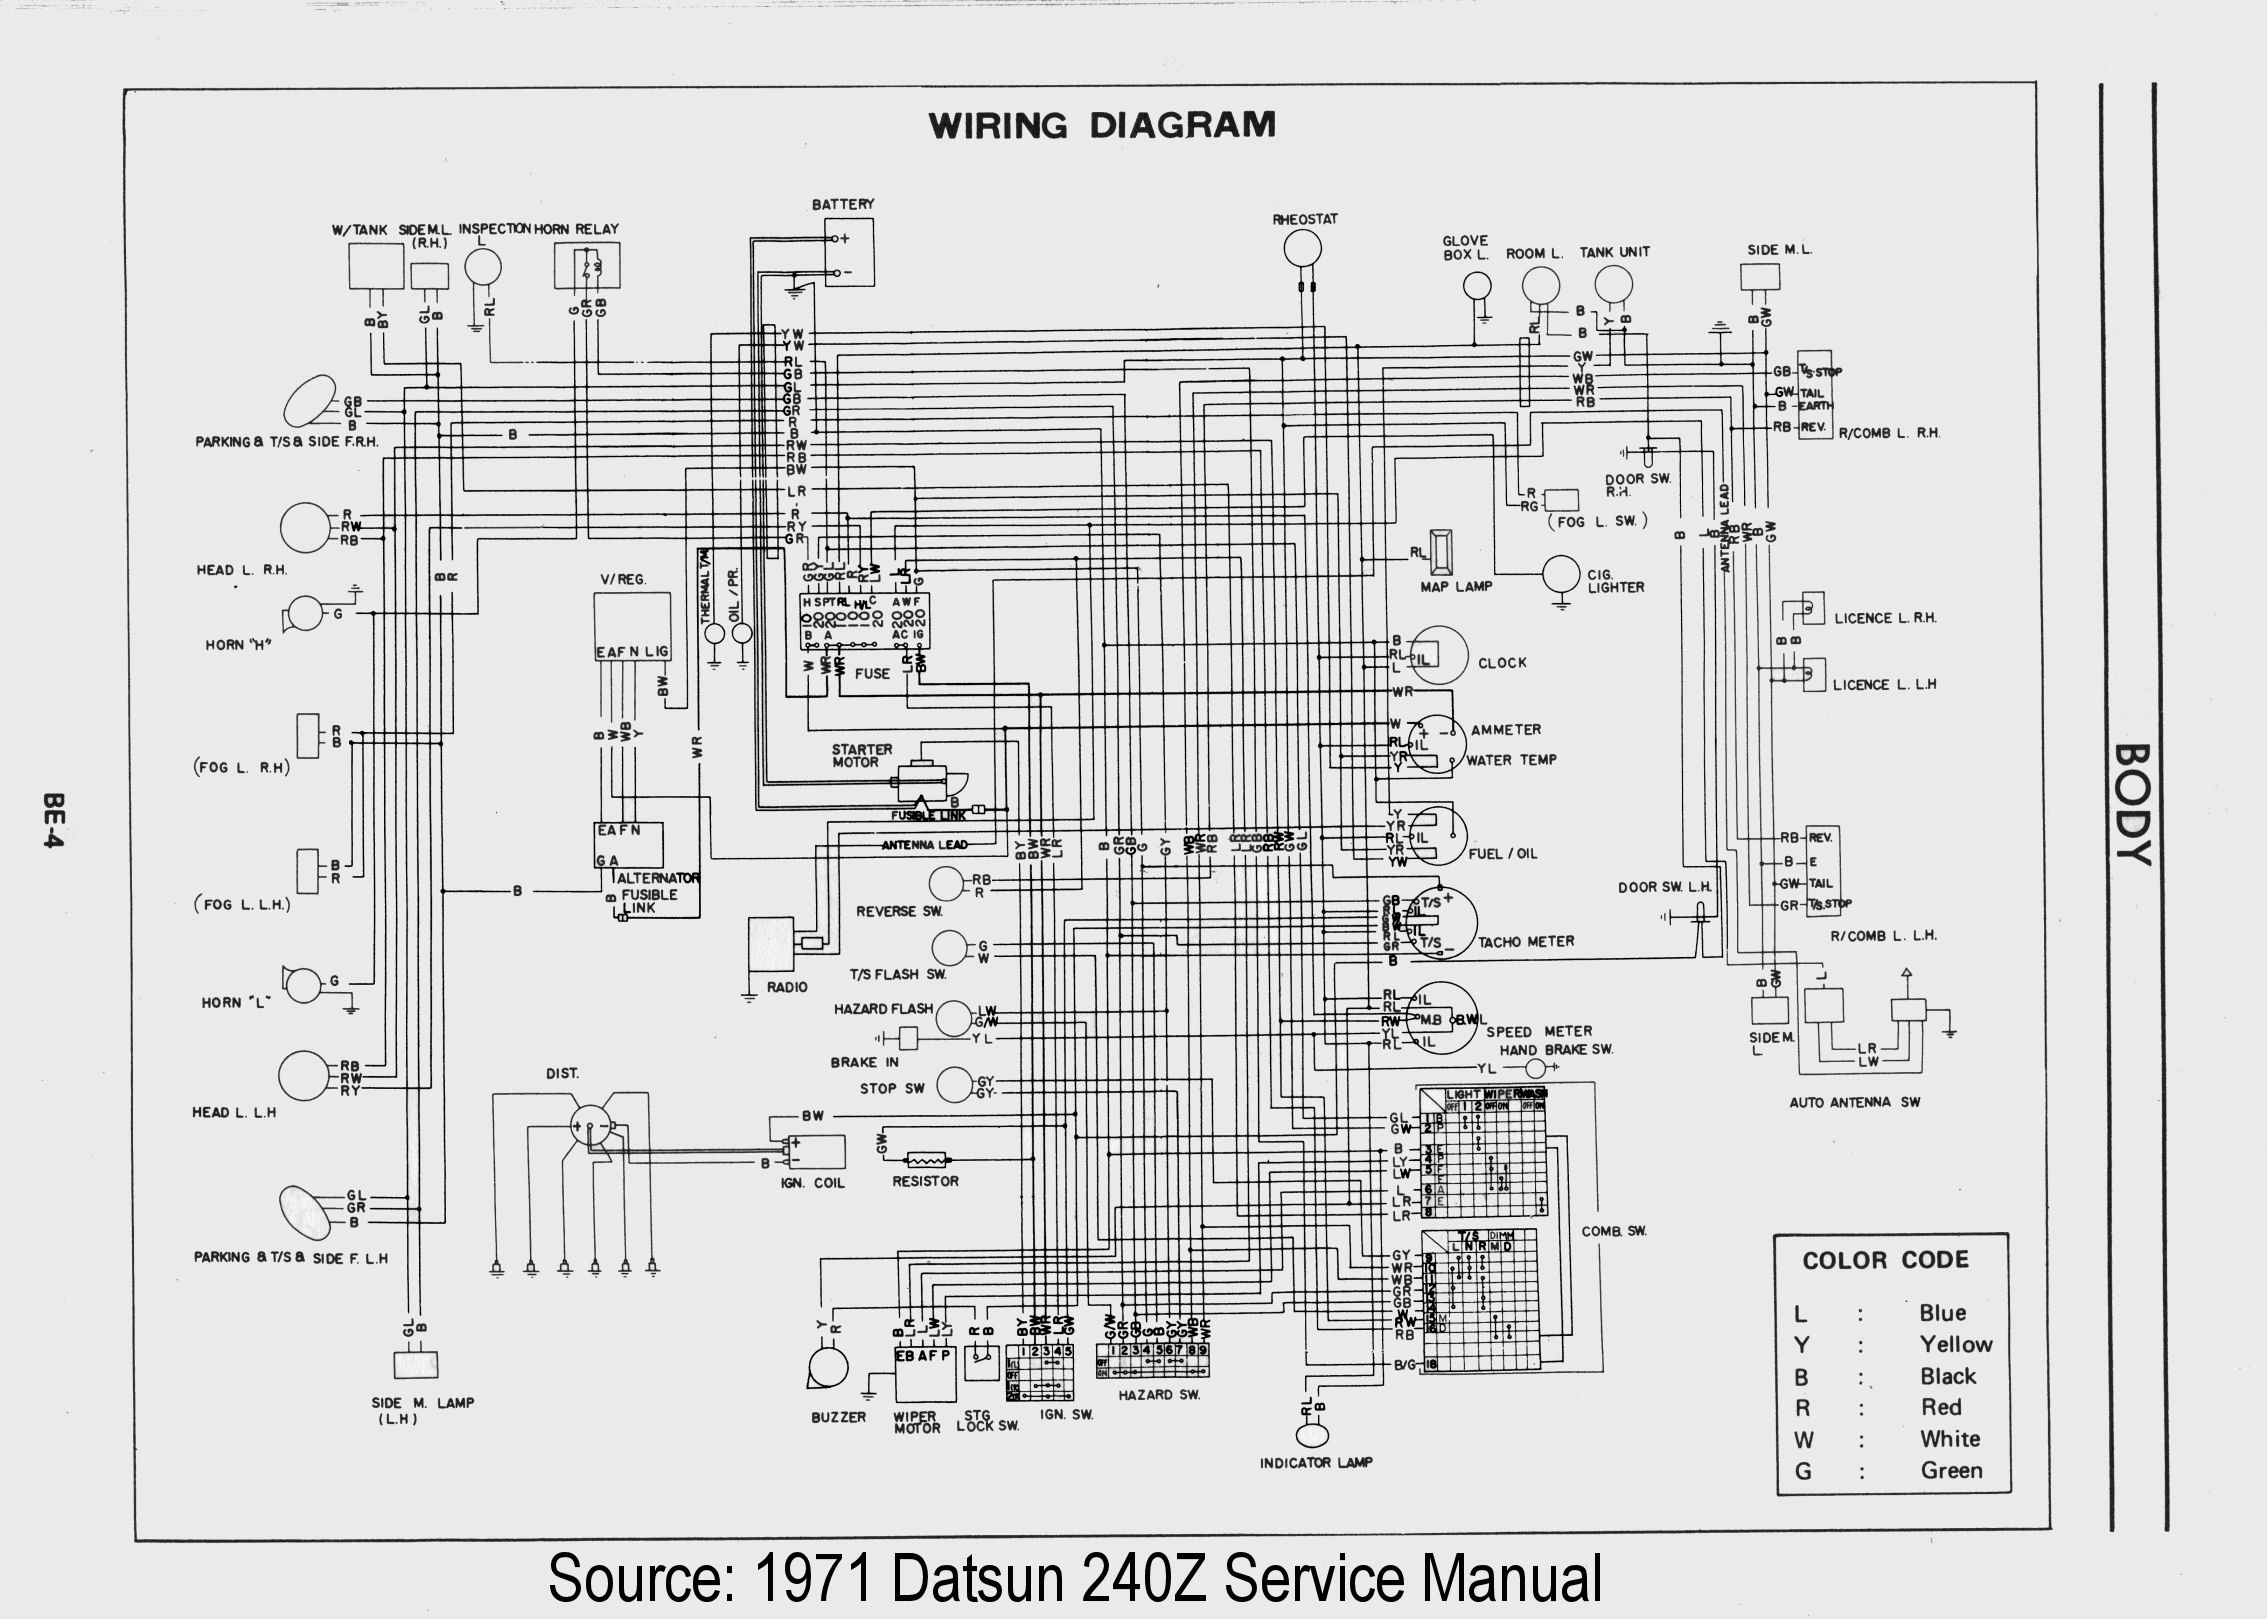 Wiring Diagram HiRes 2 240z wiring diagram fuel pump diagram \u2022 wiring diagrams j squared co 1975 xs650 wiring diagram at gsmx.co